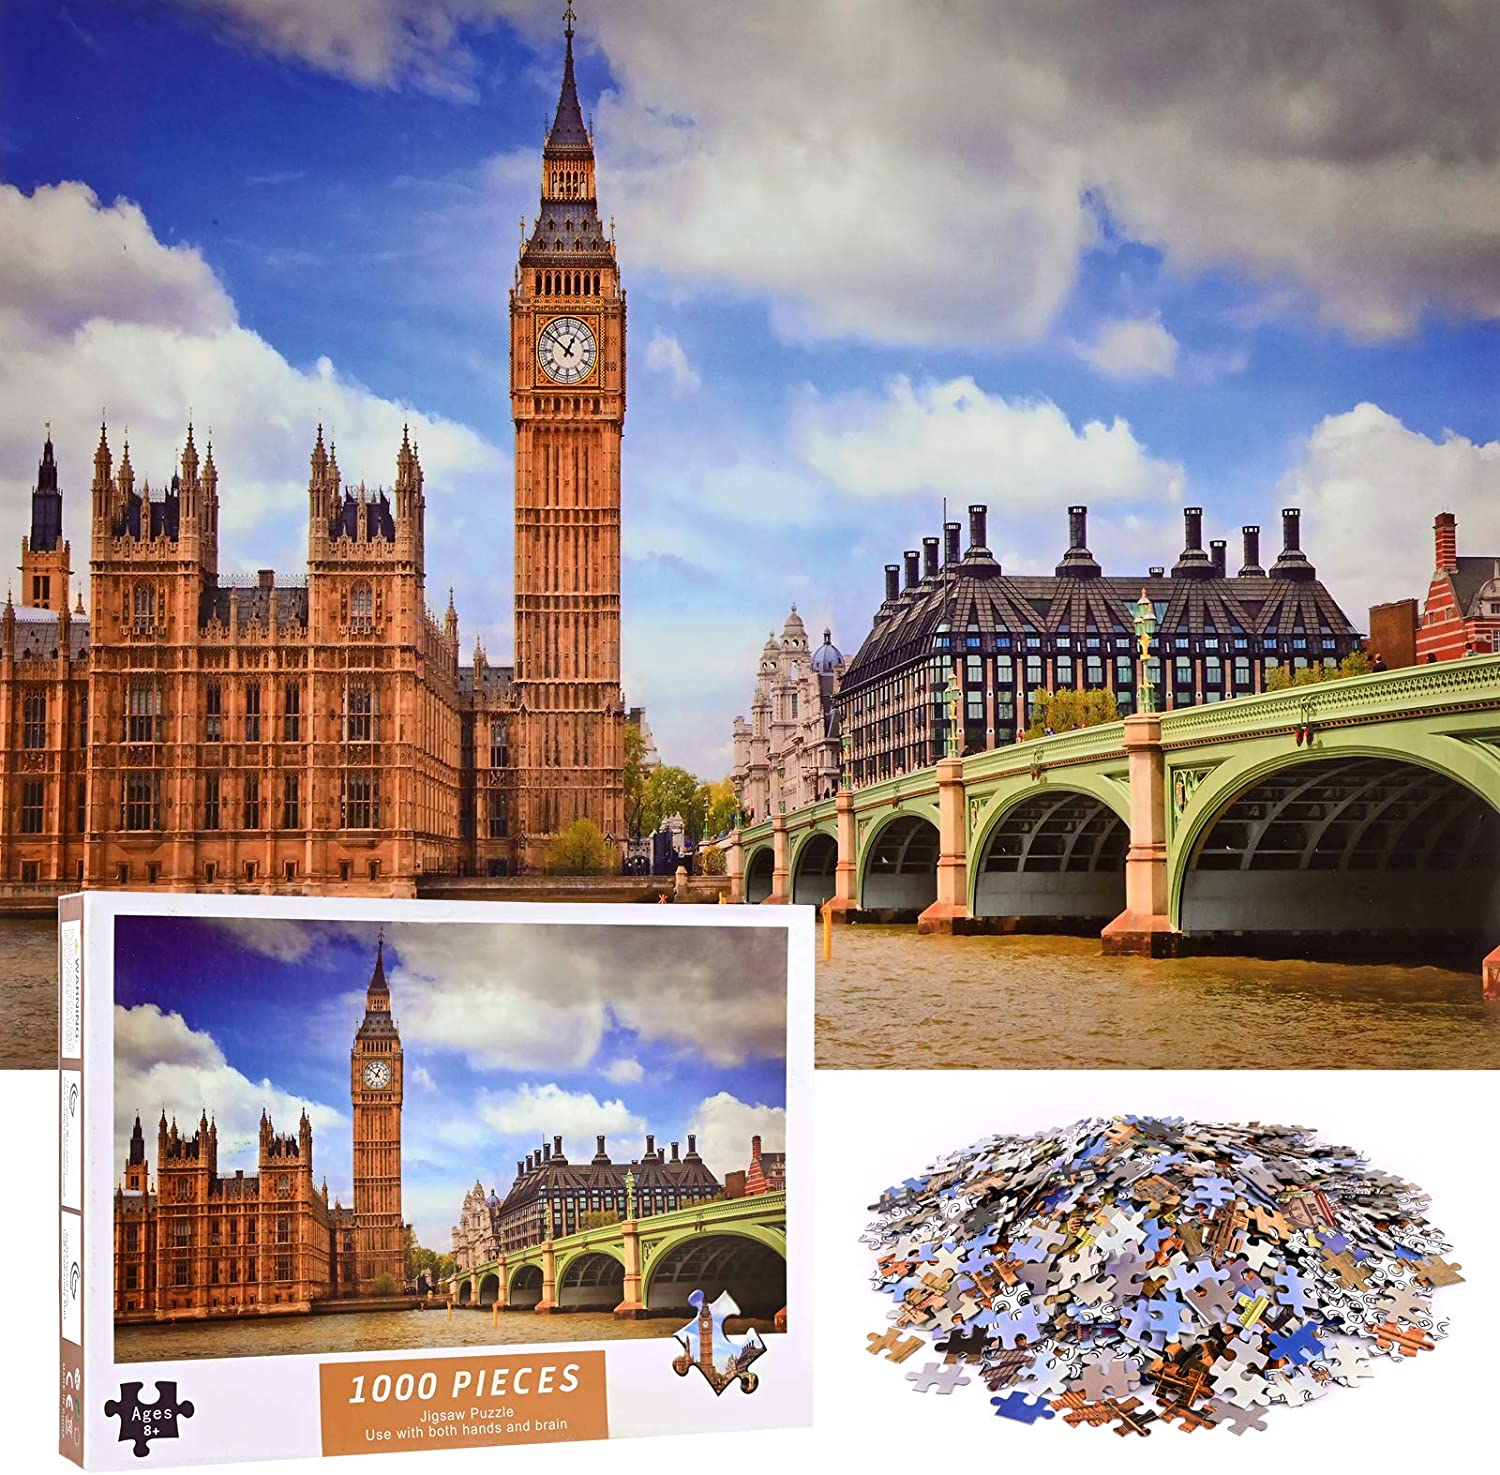 YZ JWL 1000 Pieces Jigsaw Puzzles for Adults 29.53 in x 19.69 in Big Ben Large Jigsaw Puzzle for Educational Gift Home Decor